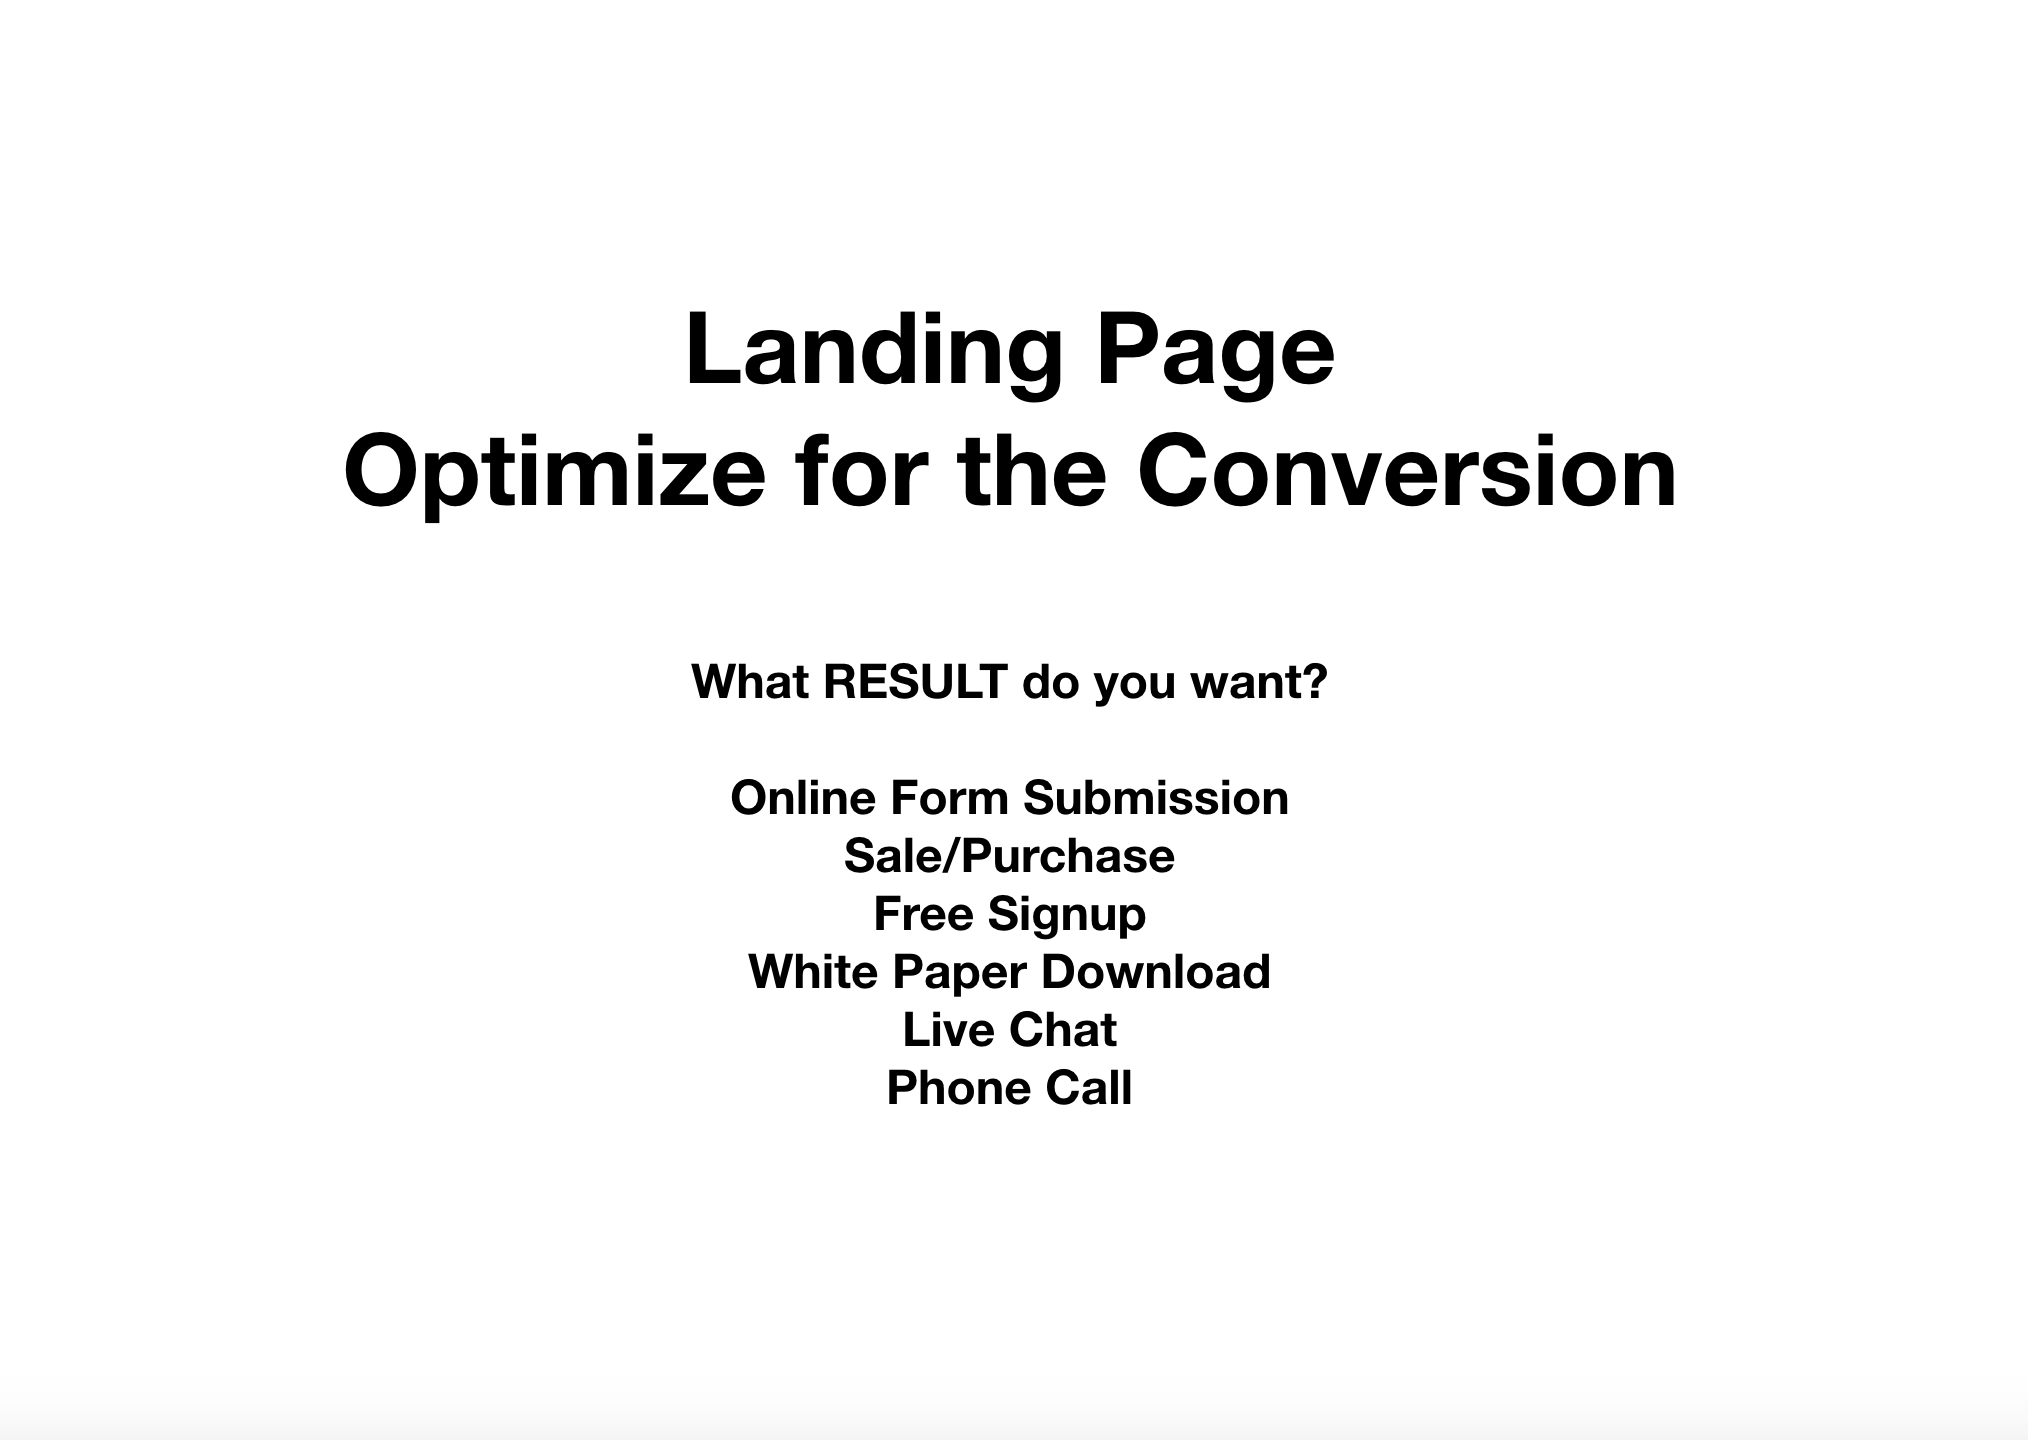 Boosting the conversion rate with landing pages.